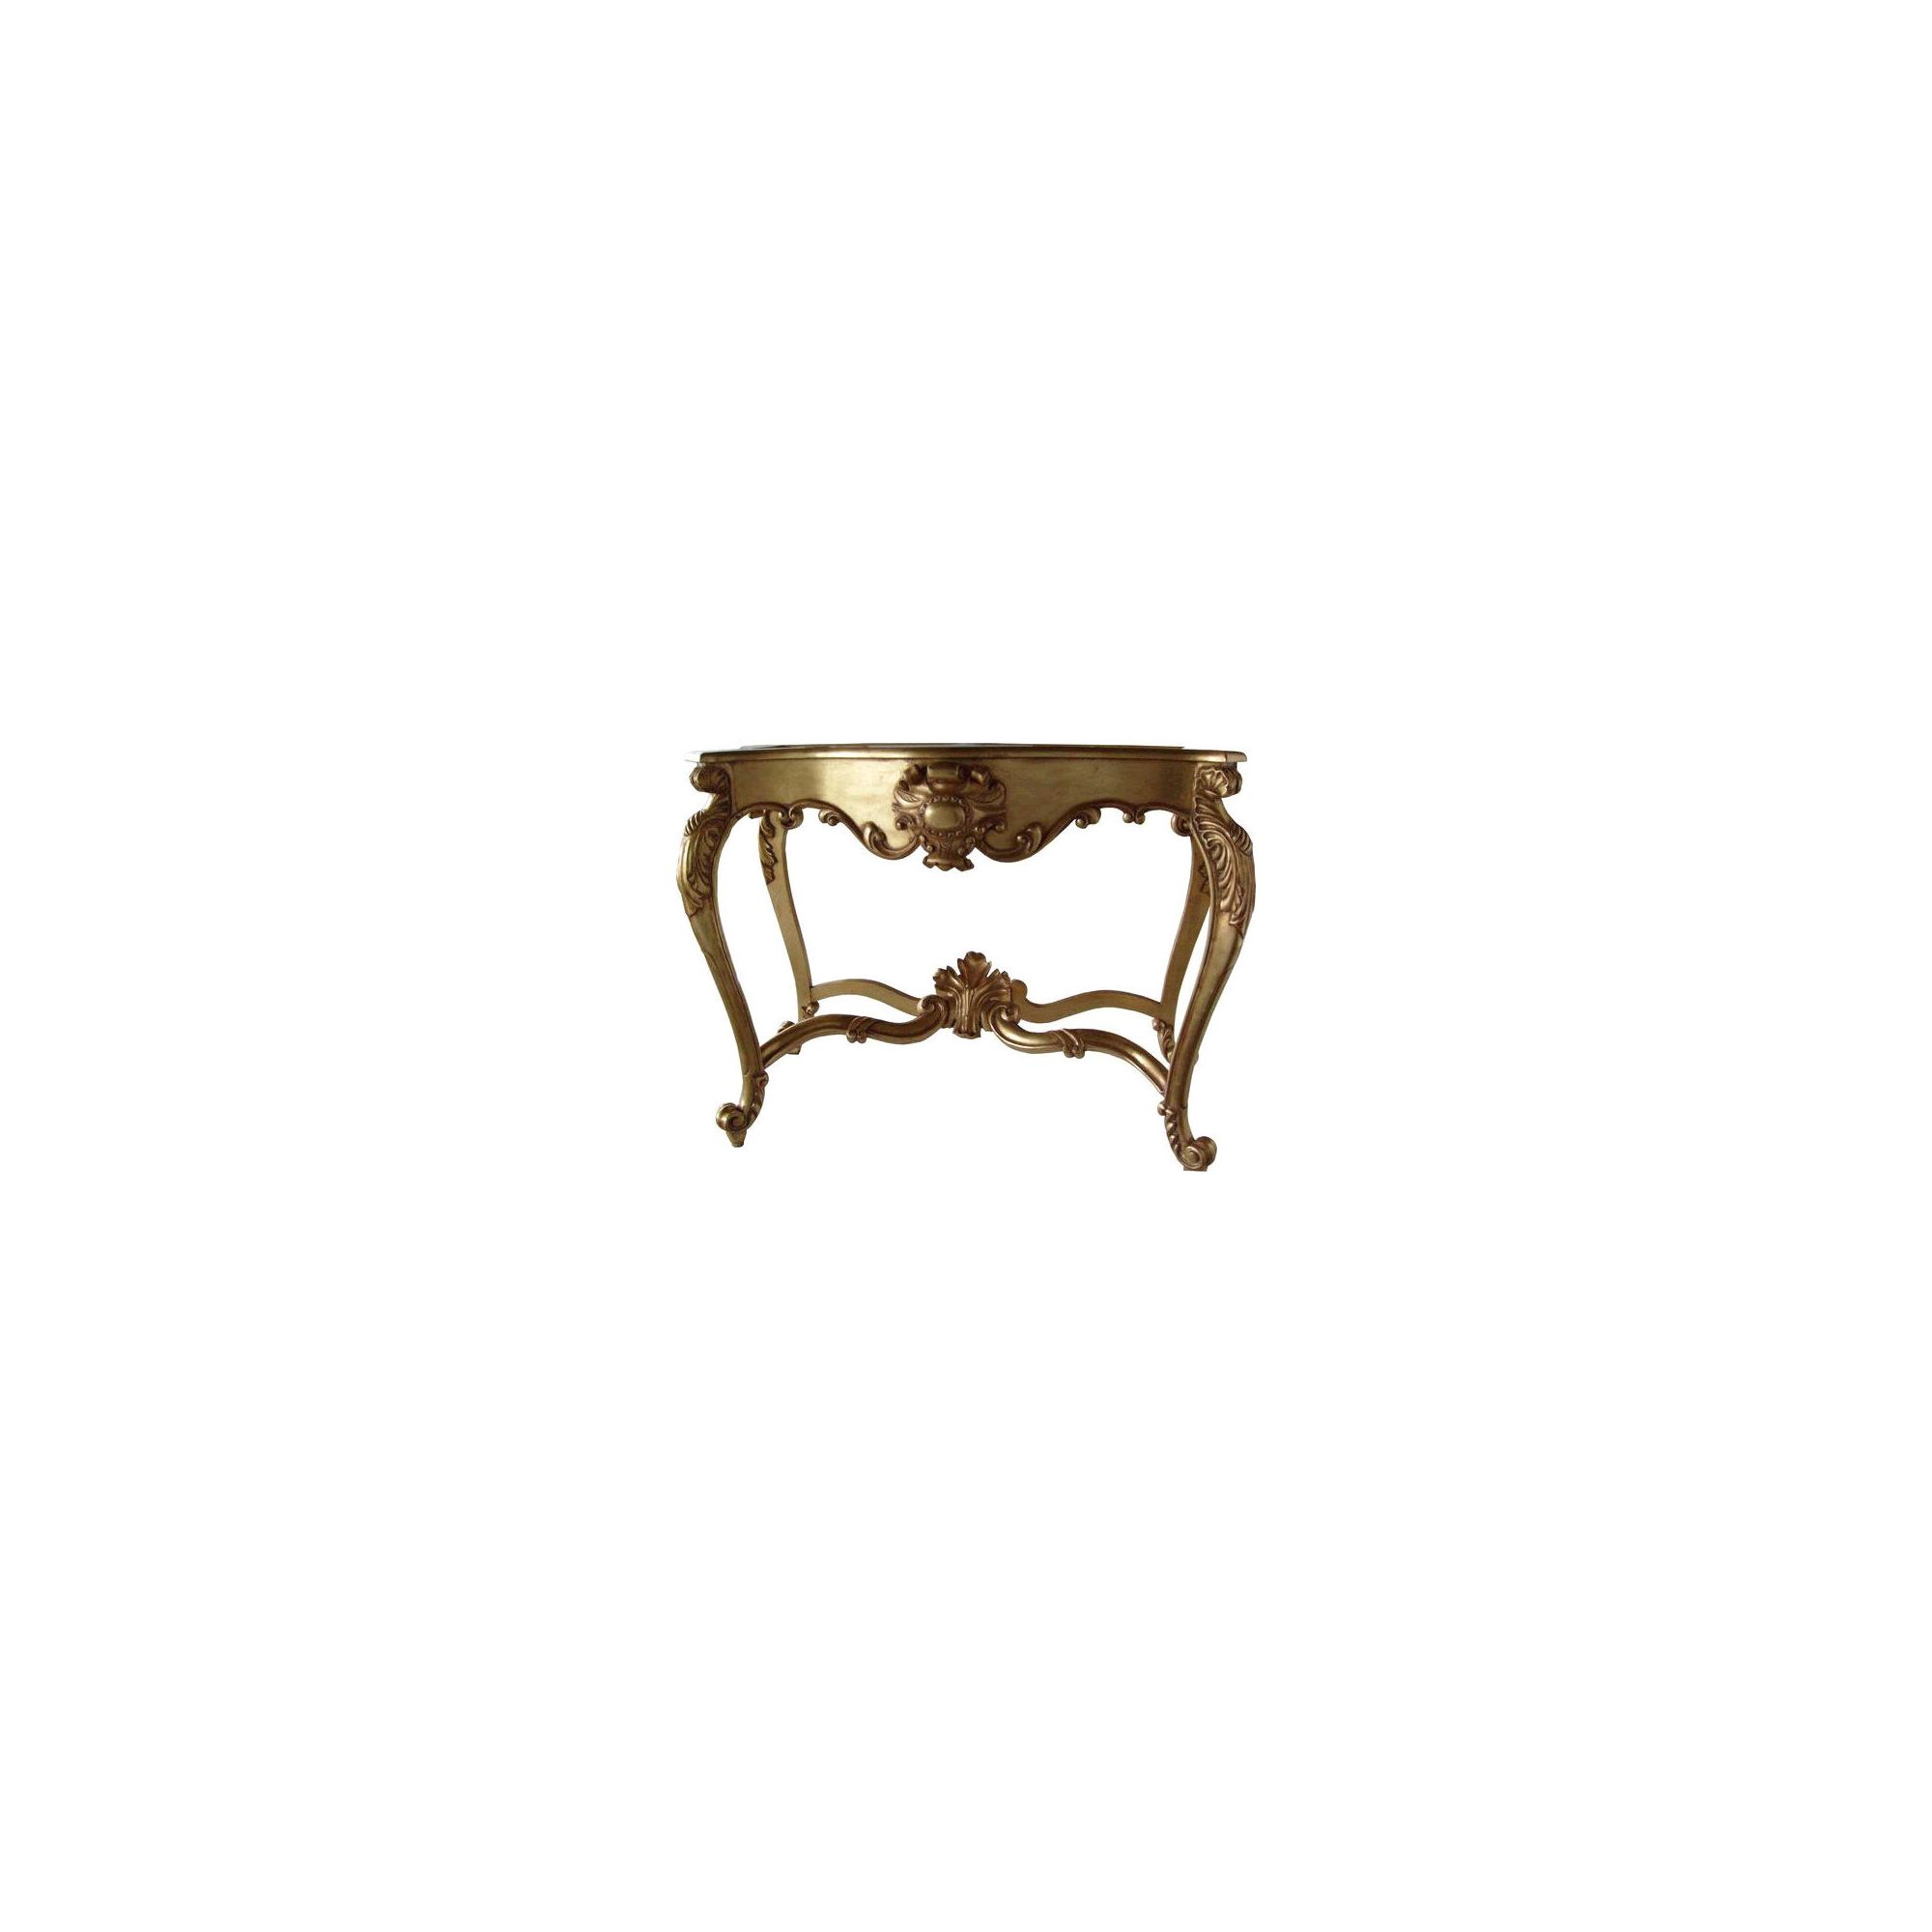 Lock stock and barrel Mahogany Marble Topped Carved Shell Console Table in Mahogany - Gold at Tesco Direct